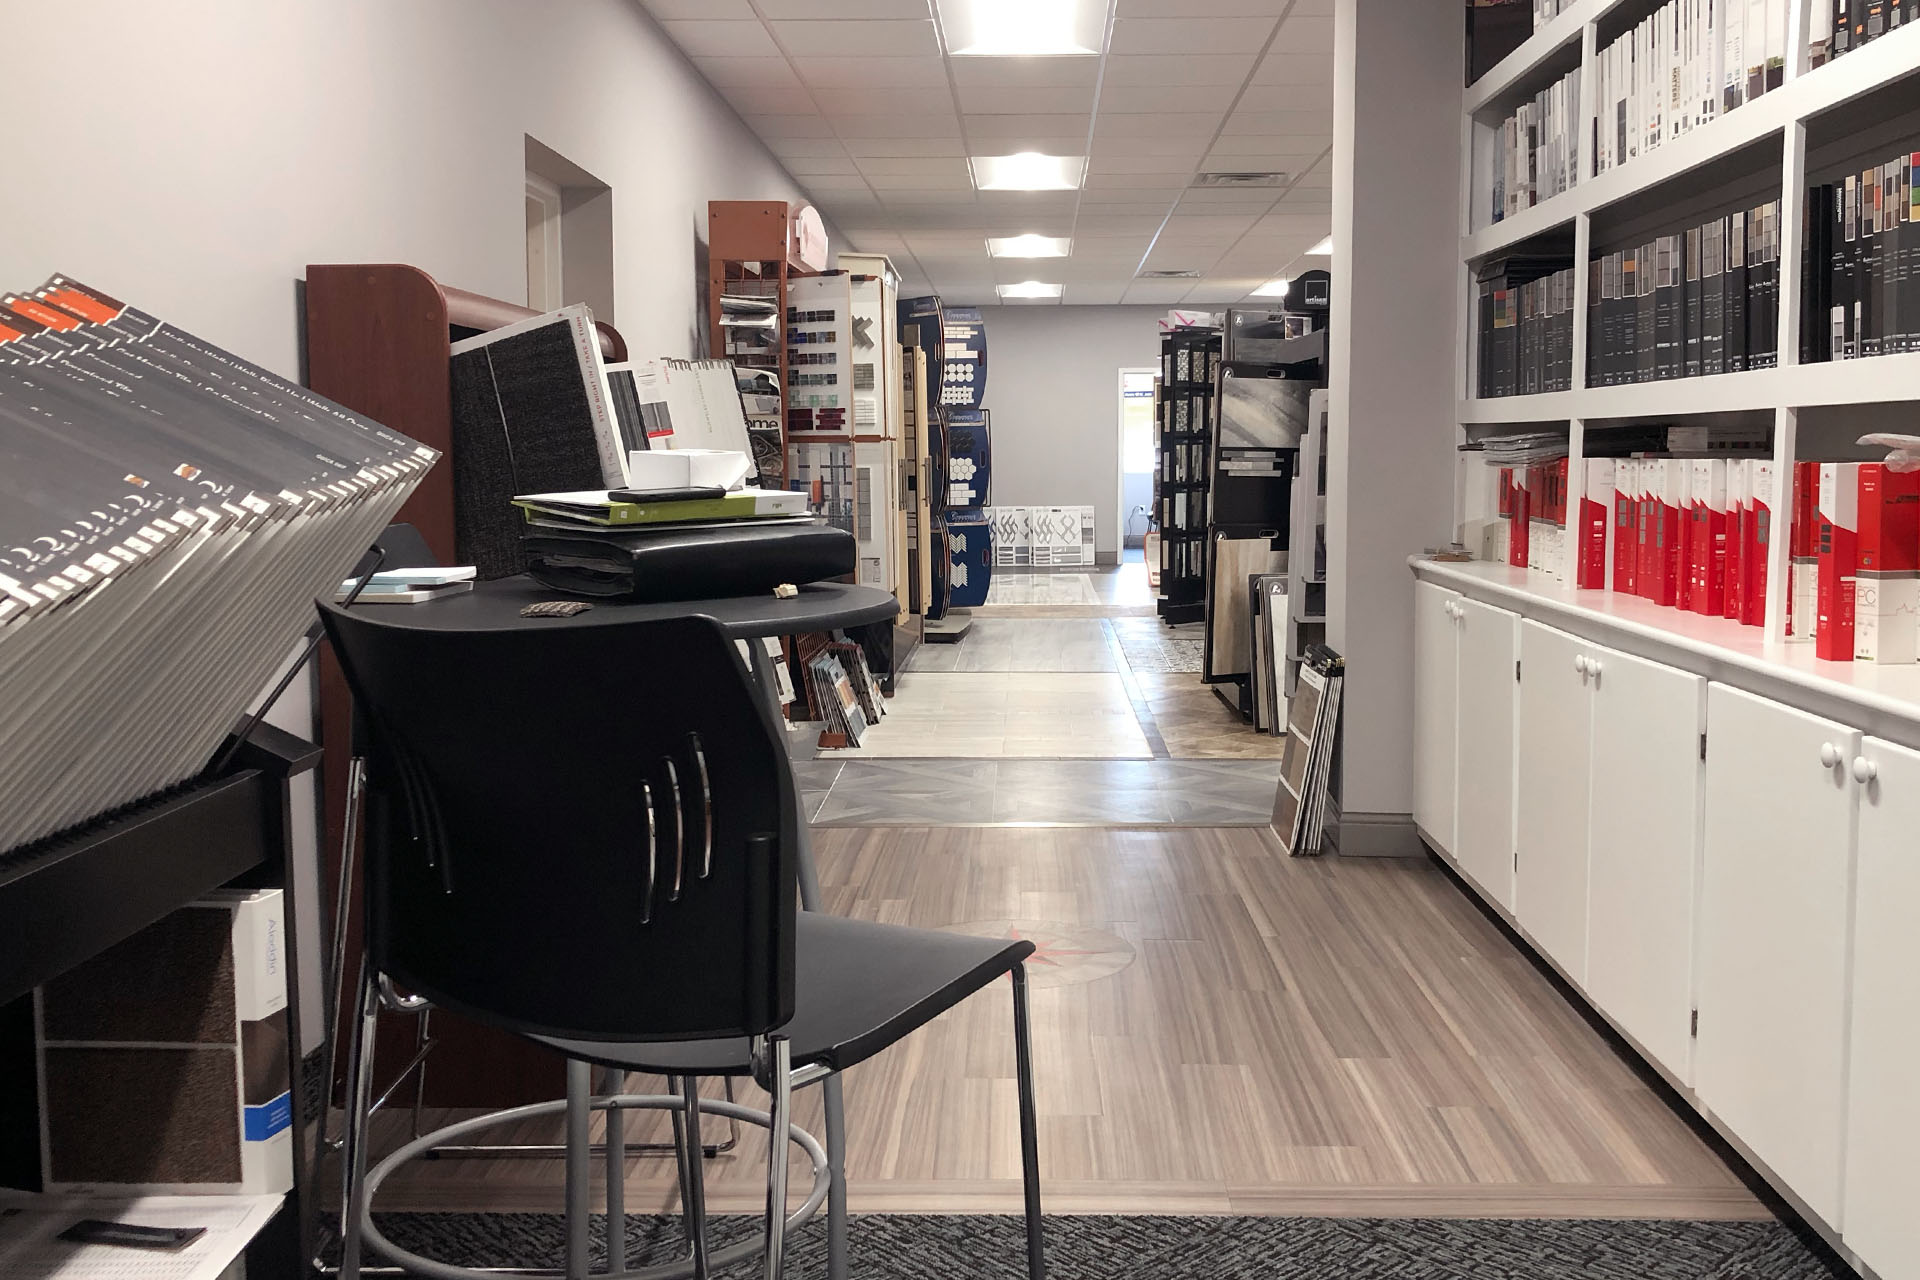 6745-2-after-commercial-showroom-March-2019-dandsflooring.jpg